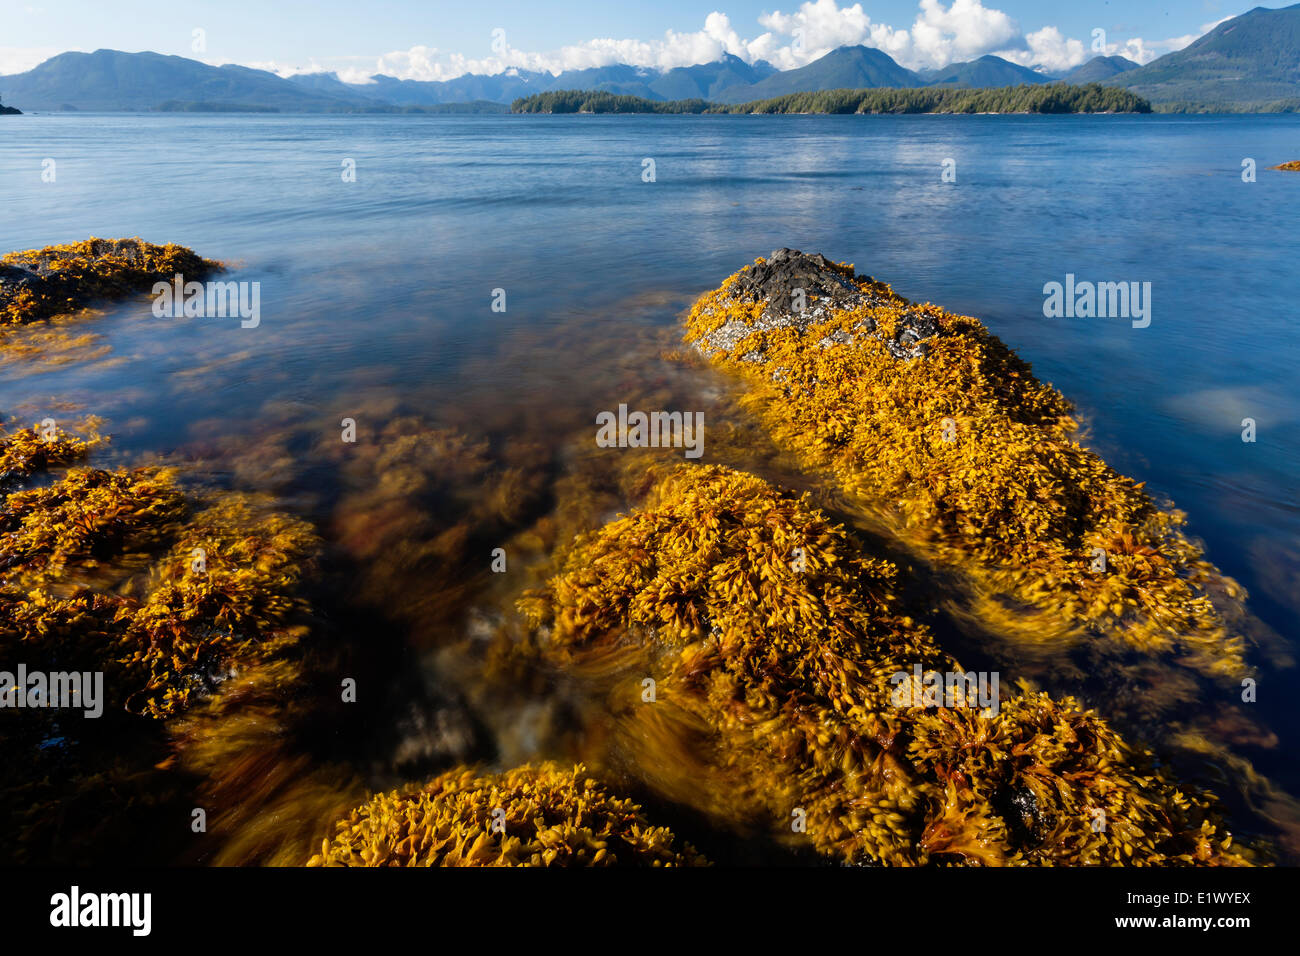 Kelp sways in the tidal current around Dodd Island in the Broken Island Group Barkley Sound Vancouver Island British - Stock Image